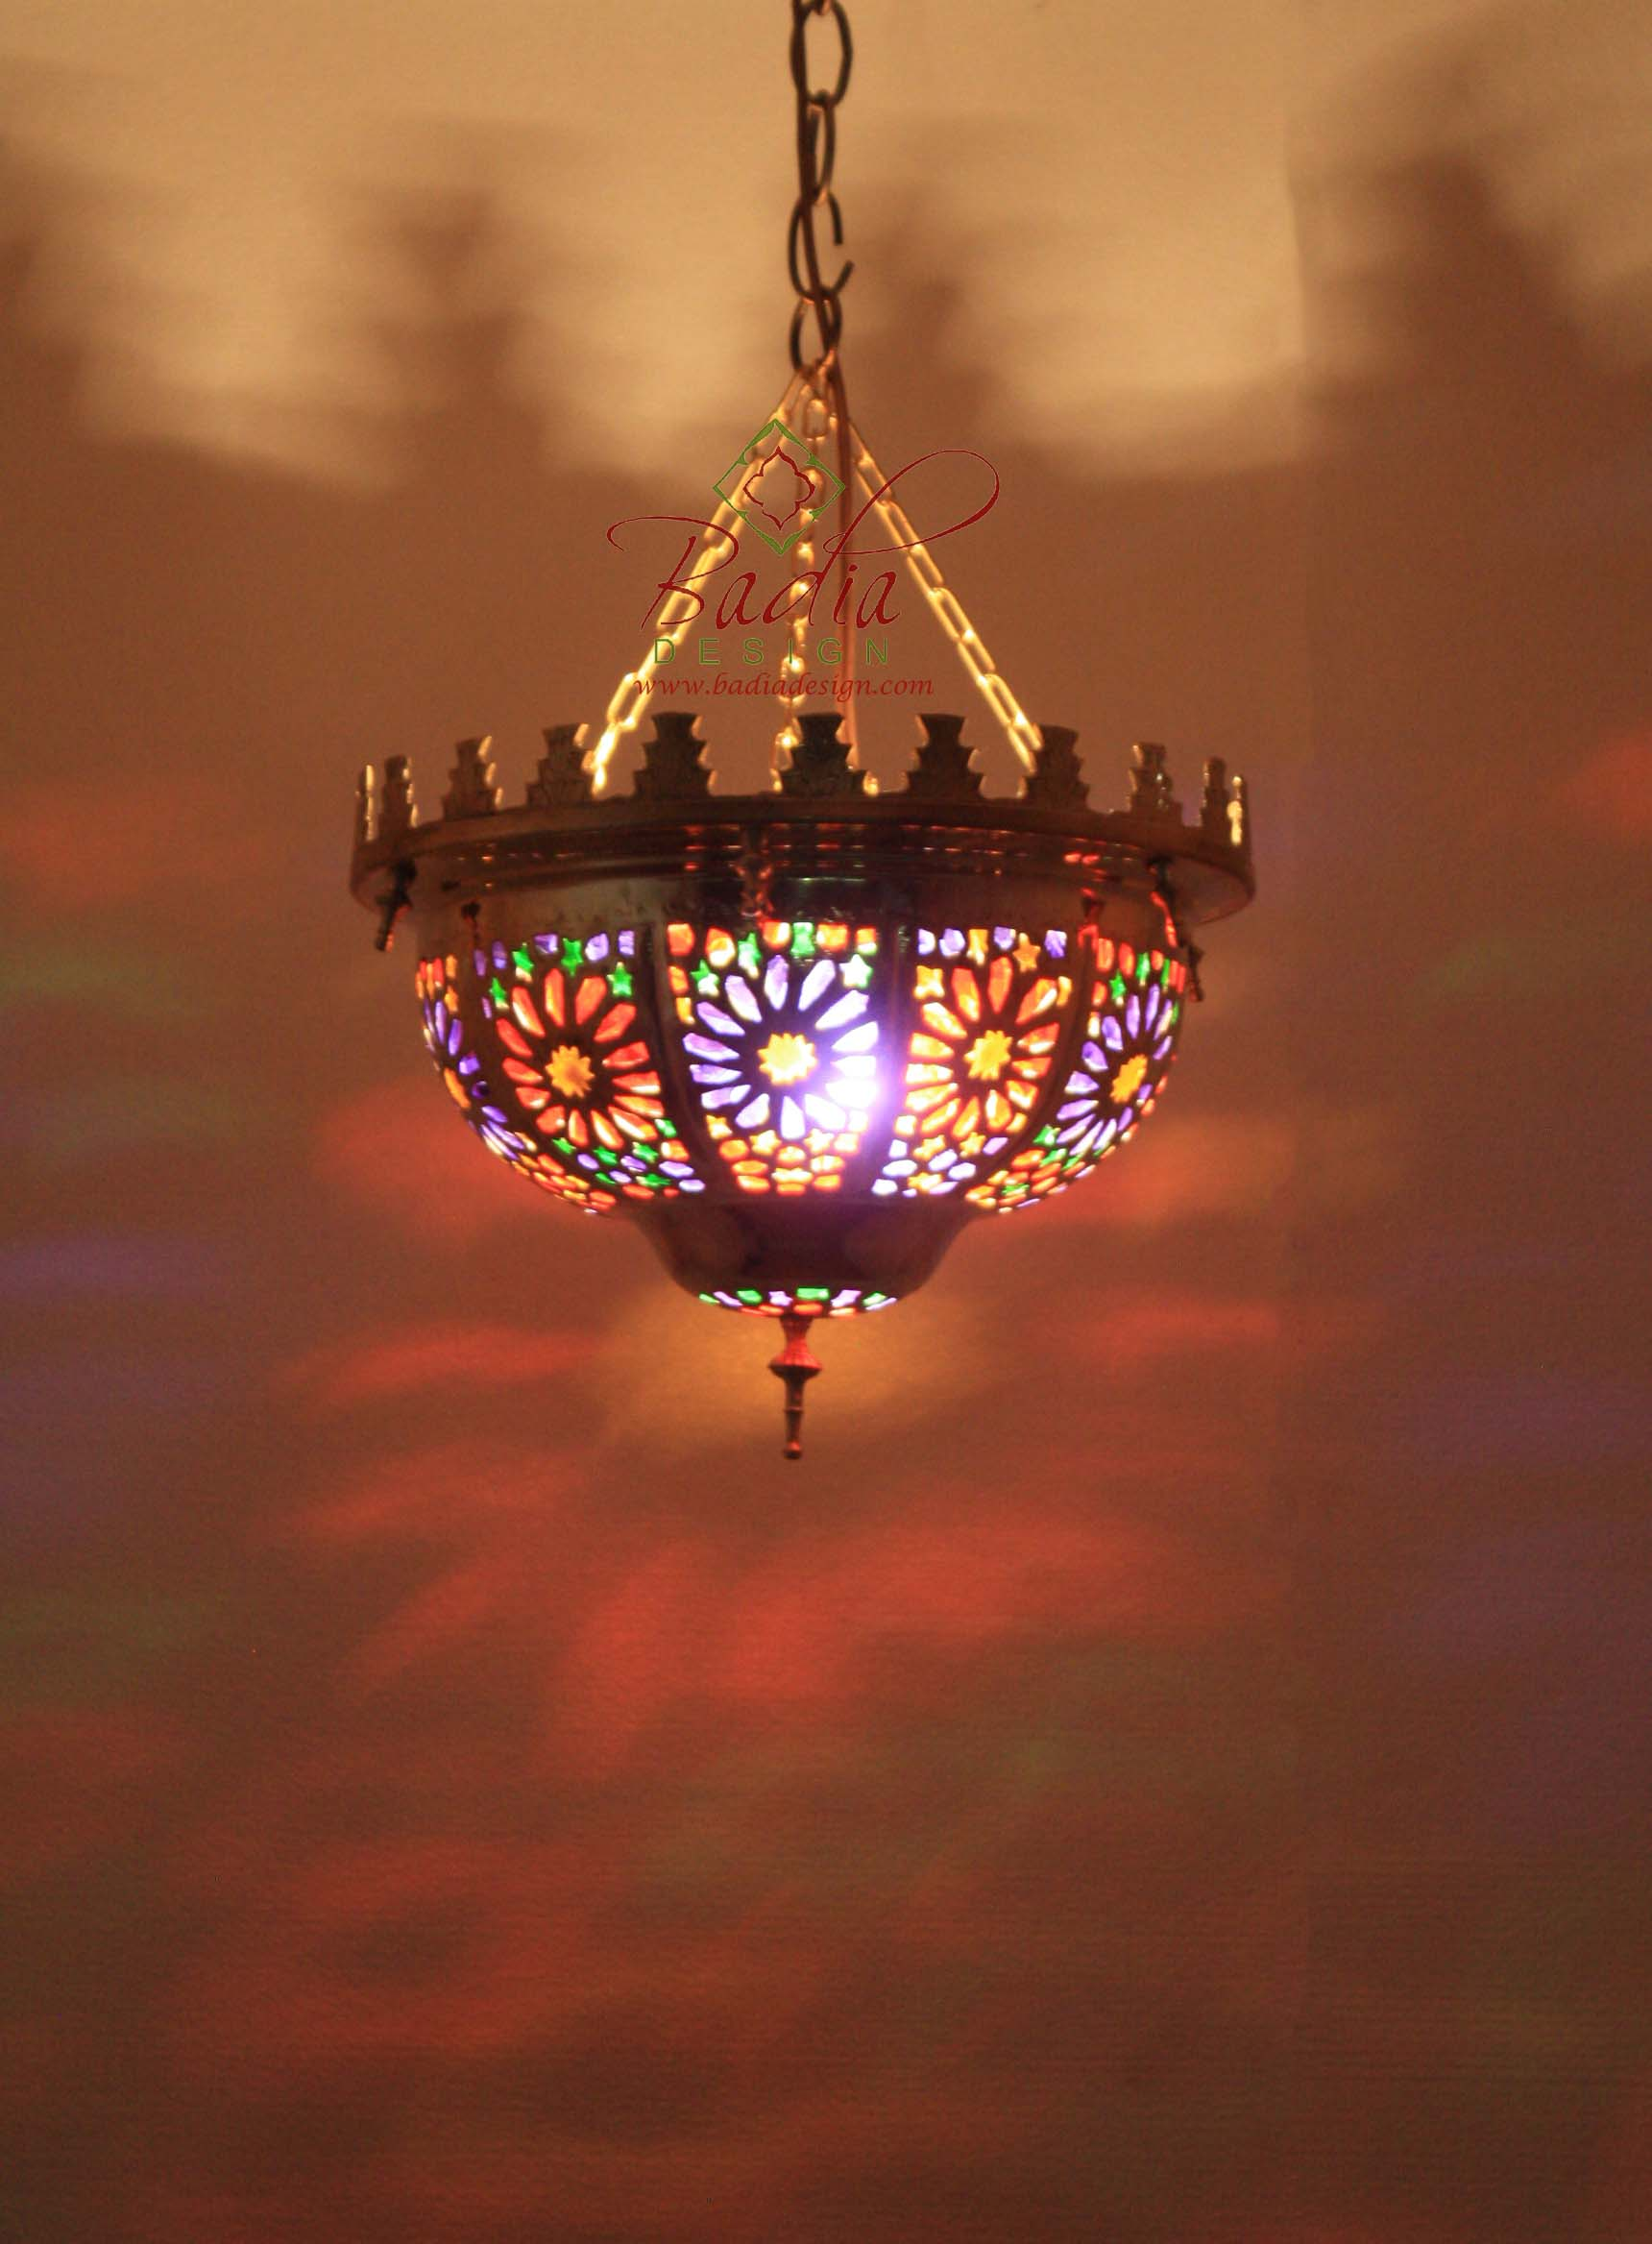 moroccan-brass-lantern-with-multi-color-glass-lig334-2.jpg